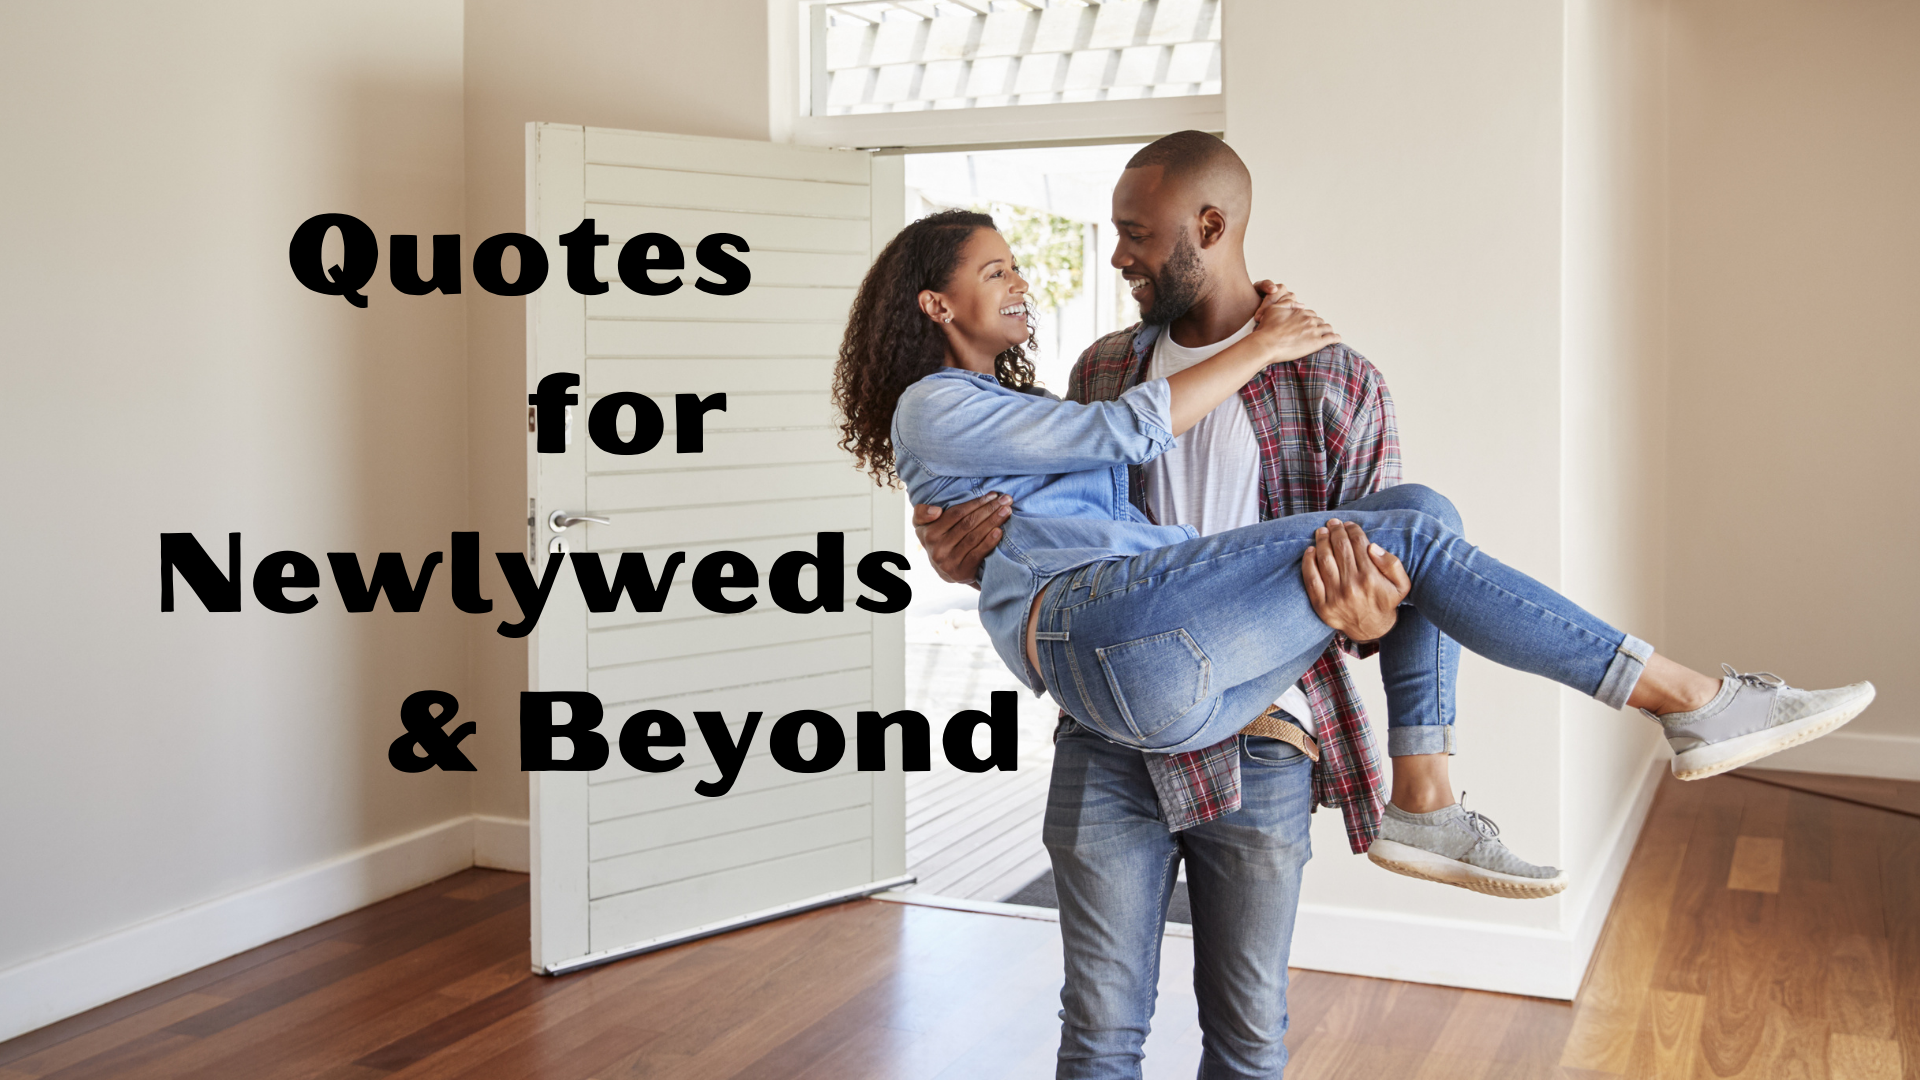 Quotes for Newlyweds